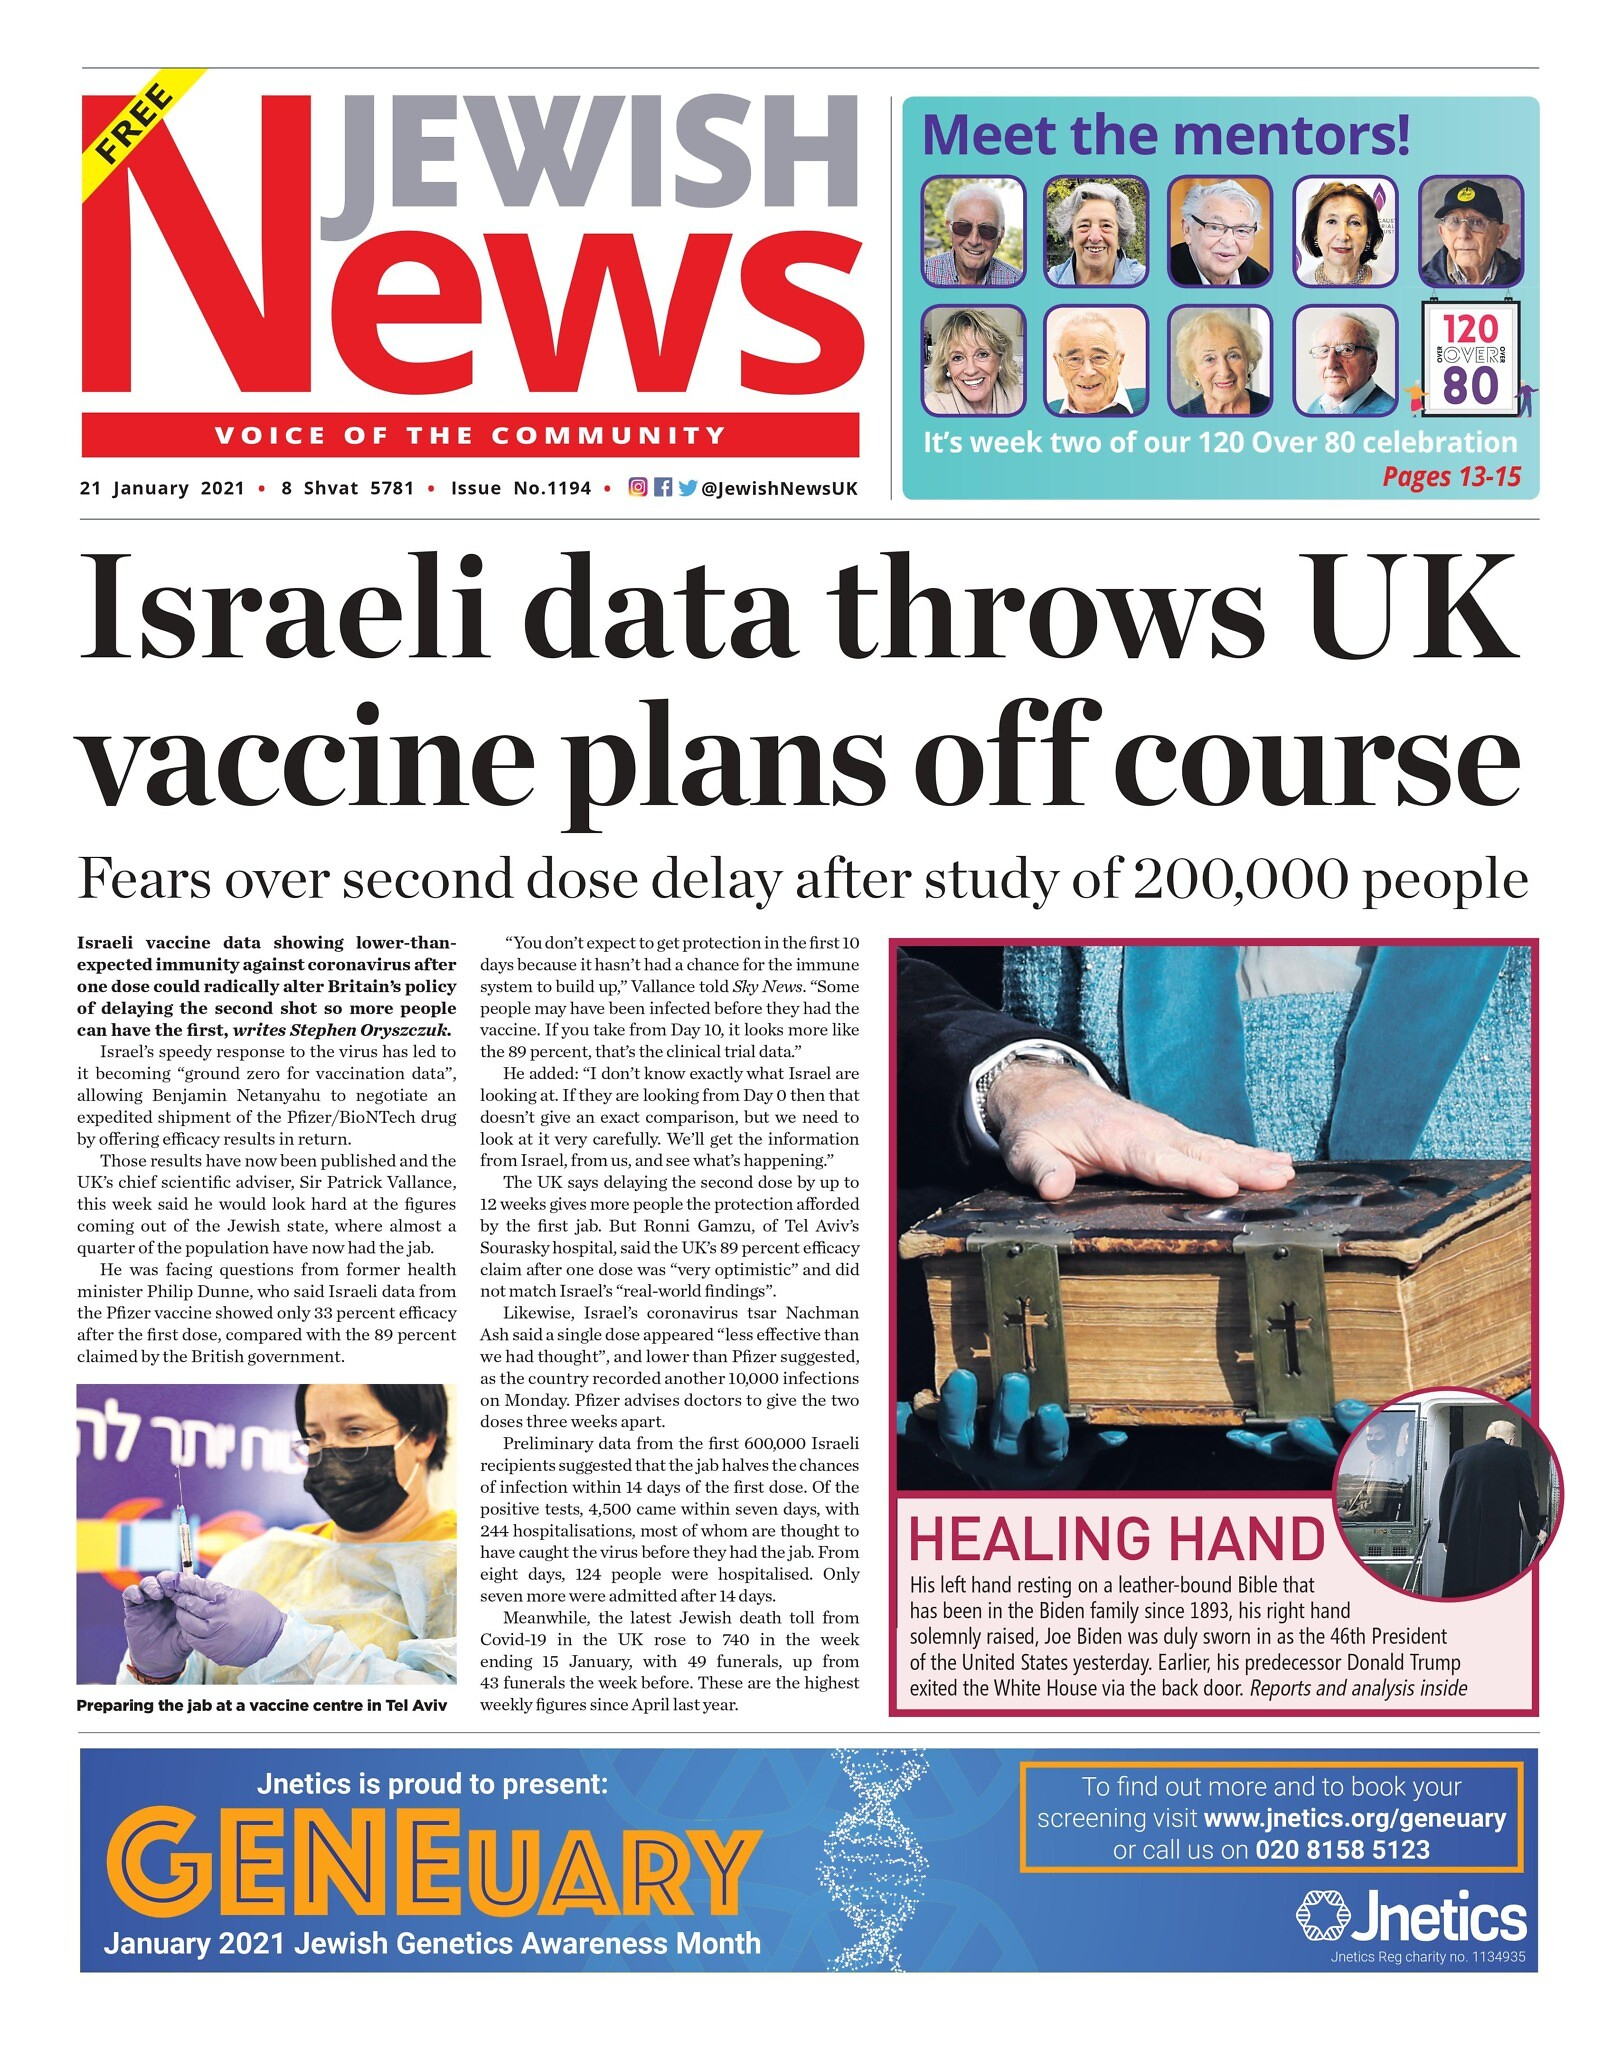 This week's Jewish News front page.